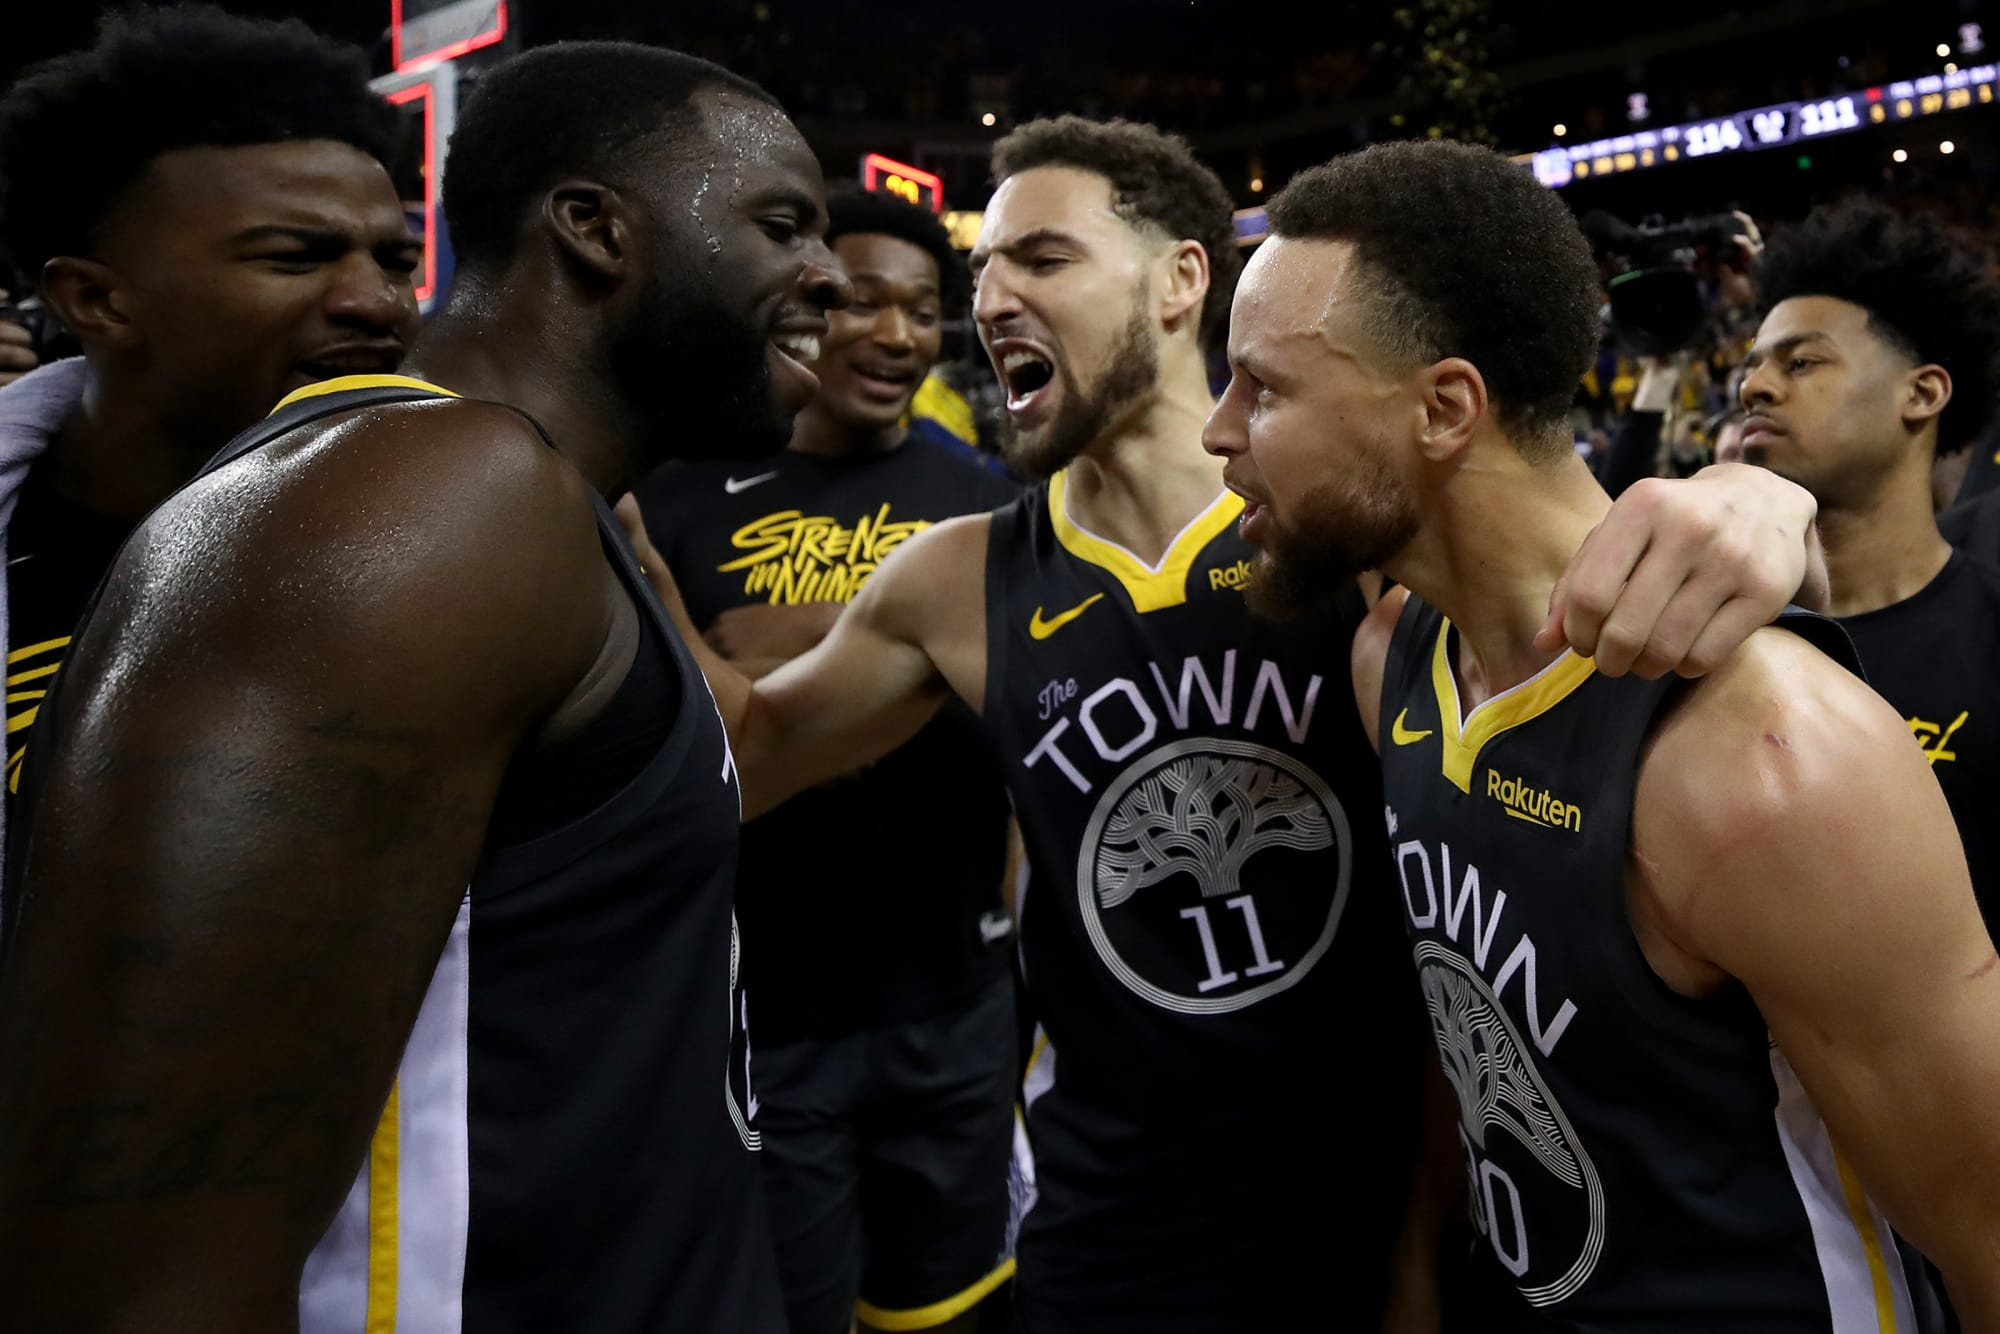 Draymond Green (23), Klay Thompson (11) et Stephen Curry (30) des Golden State Warriors.